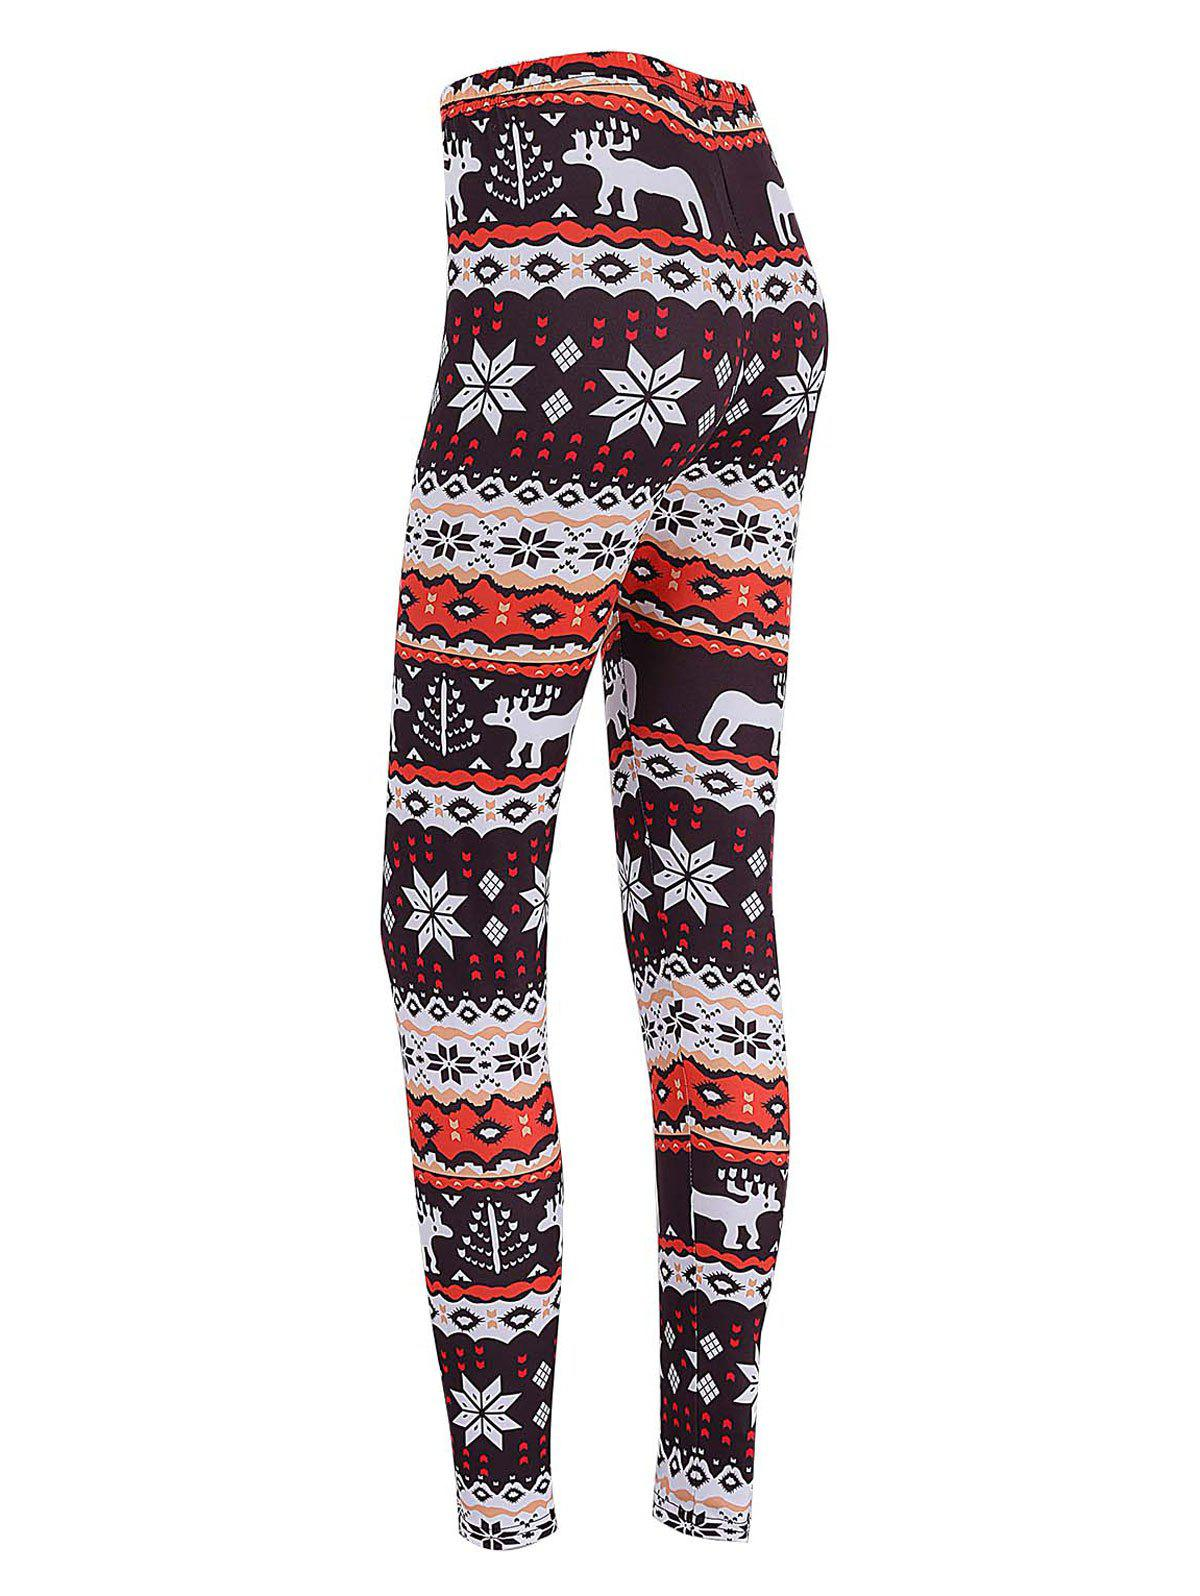 Buy Skinny Elk Snowflake Print Christmas Leggings